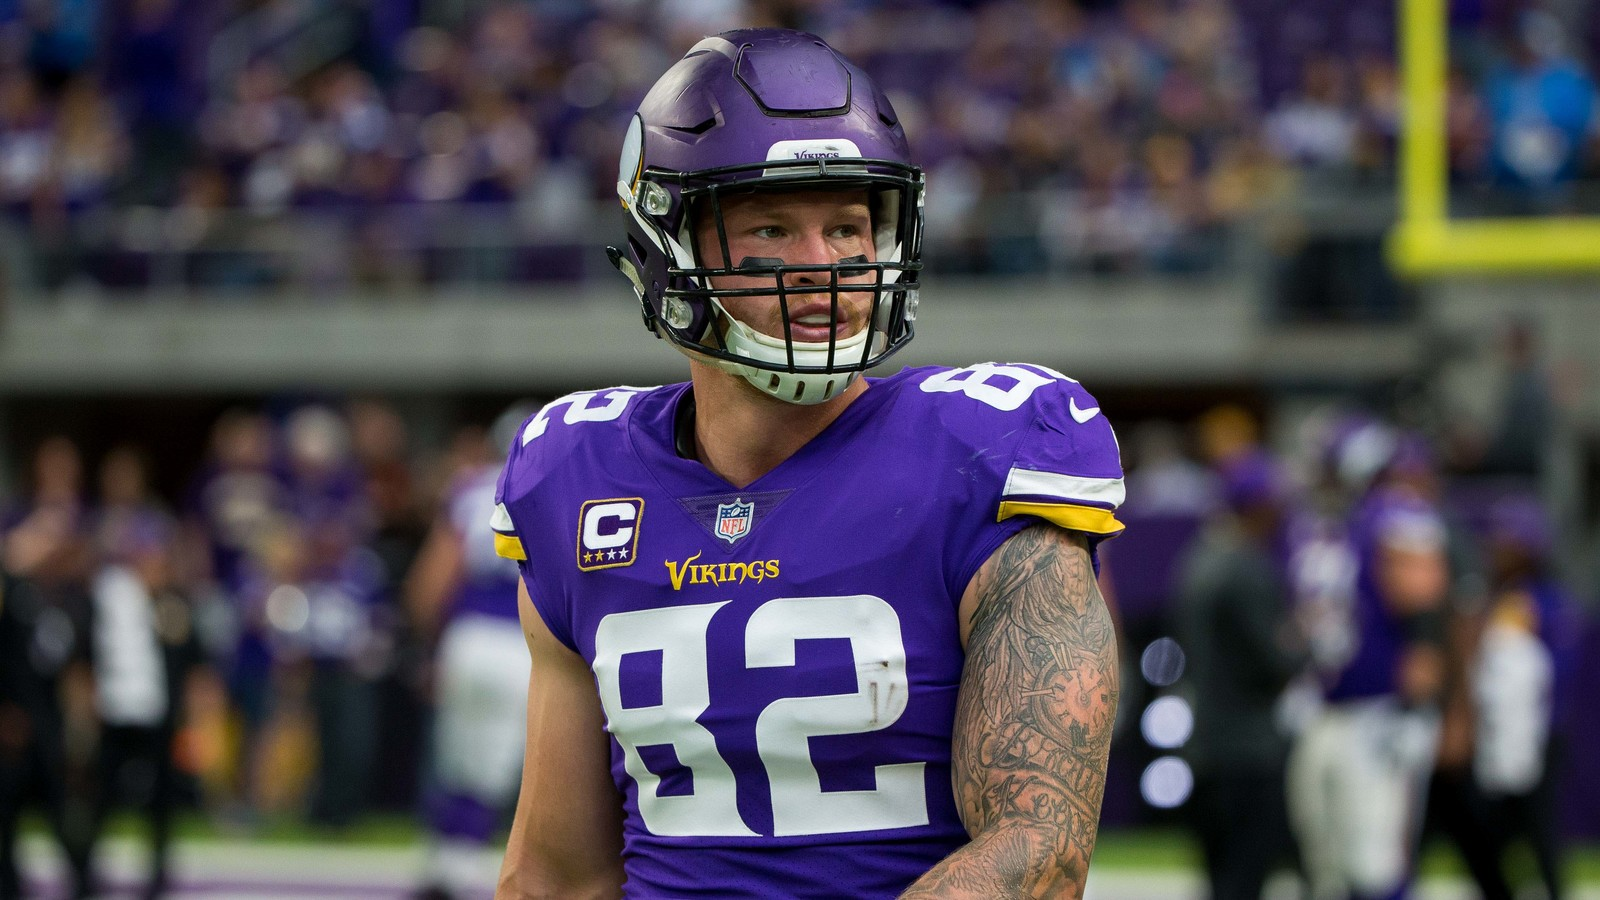 Kyle Rudolph might actually suit up for the Vikings on Sunday